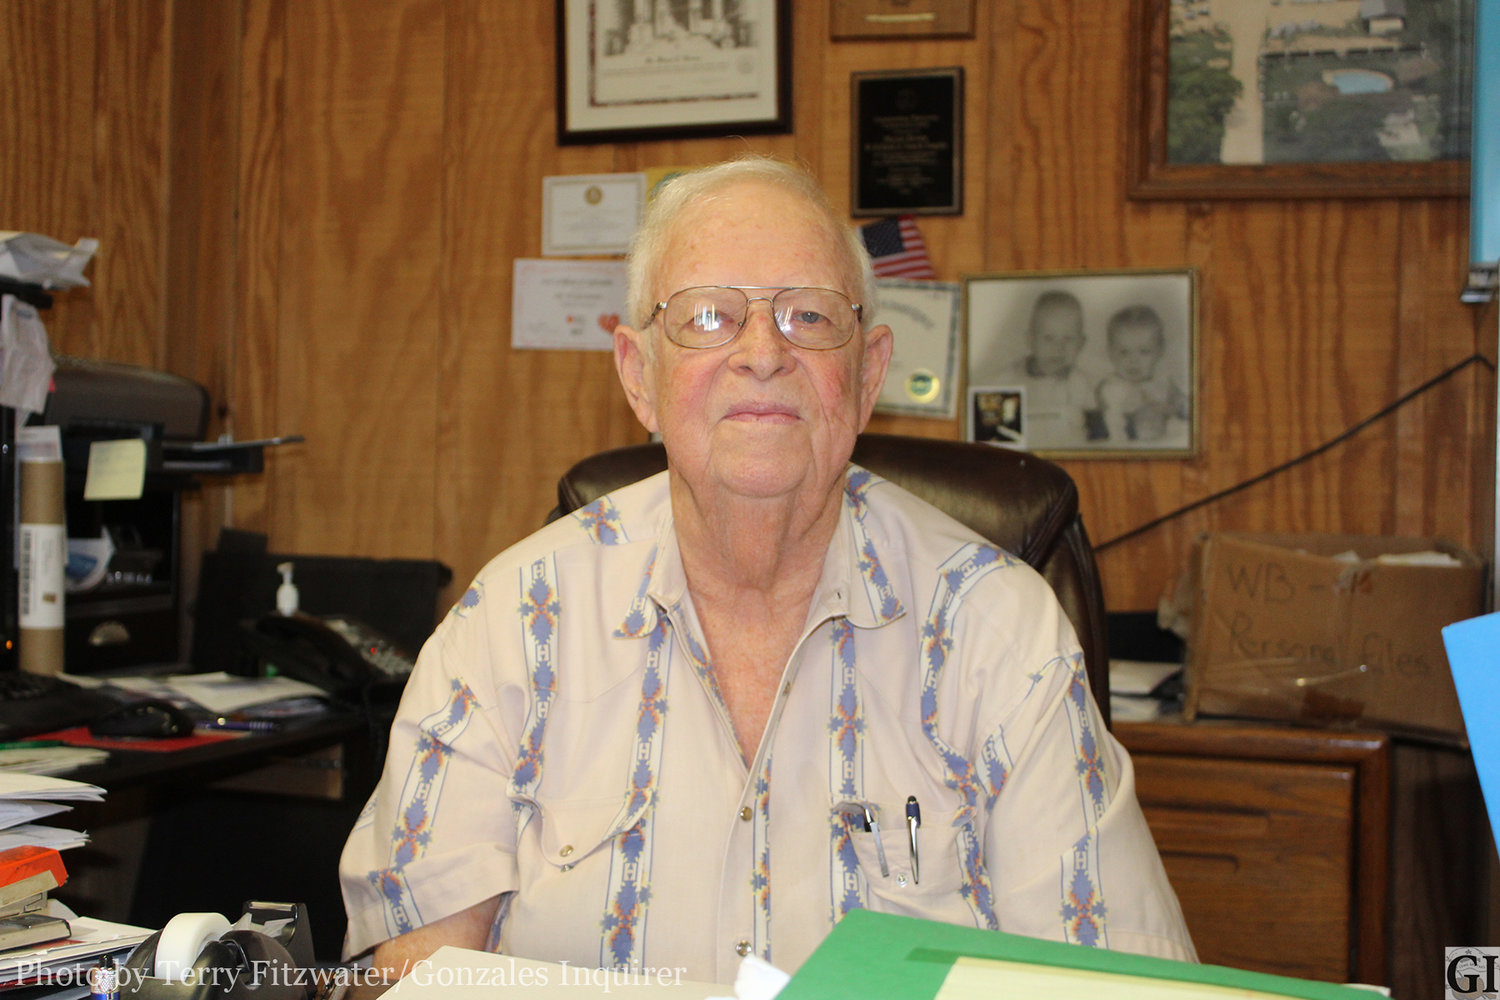 For over 50 years Wayne Brown, the owner of WB Farm and Ranch Supply, has been providing friendly, family service to people in Gonzales and south central Texas.